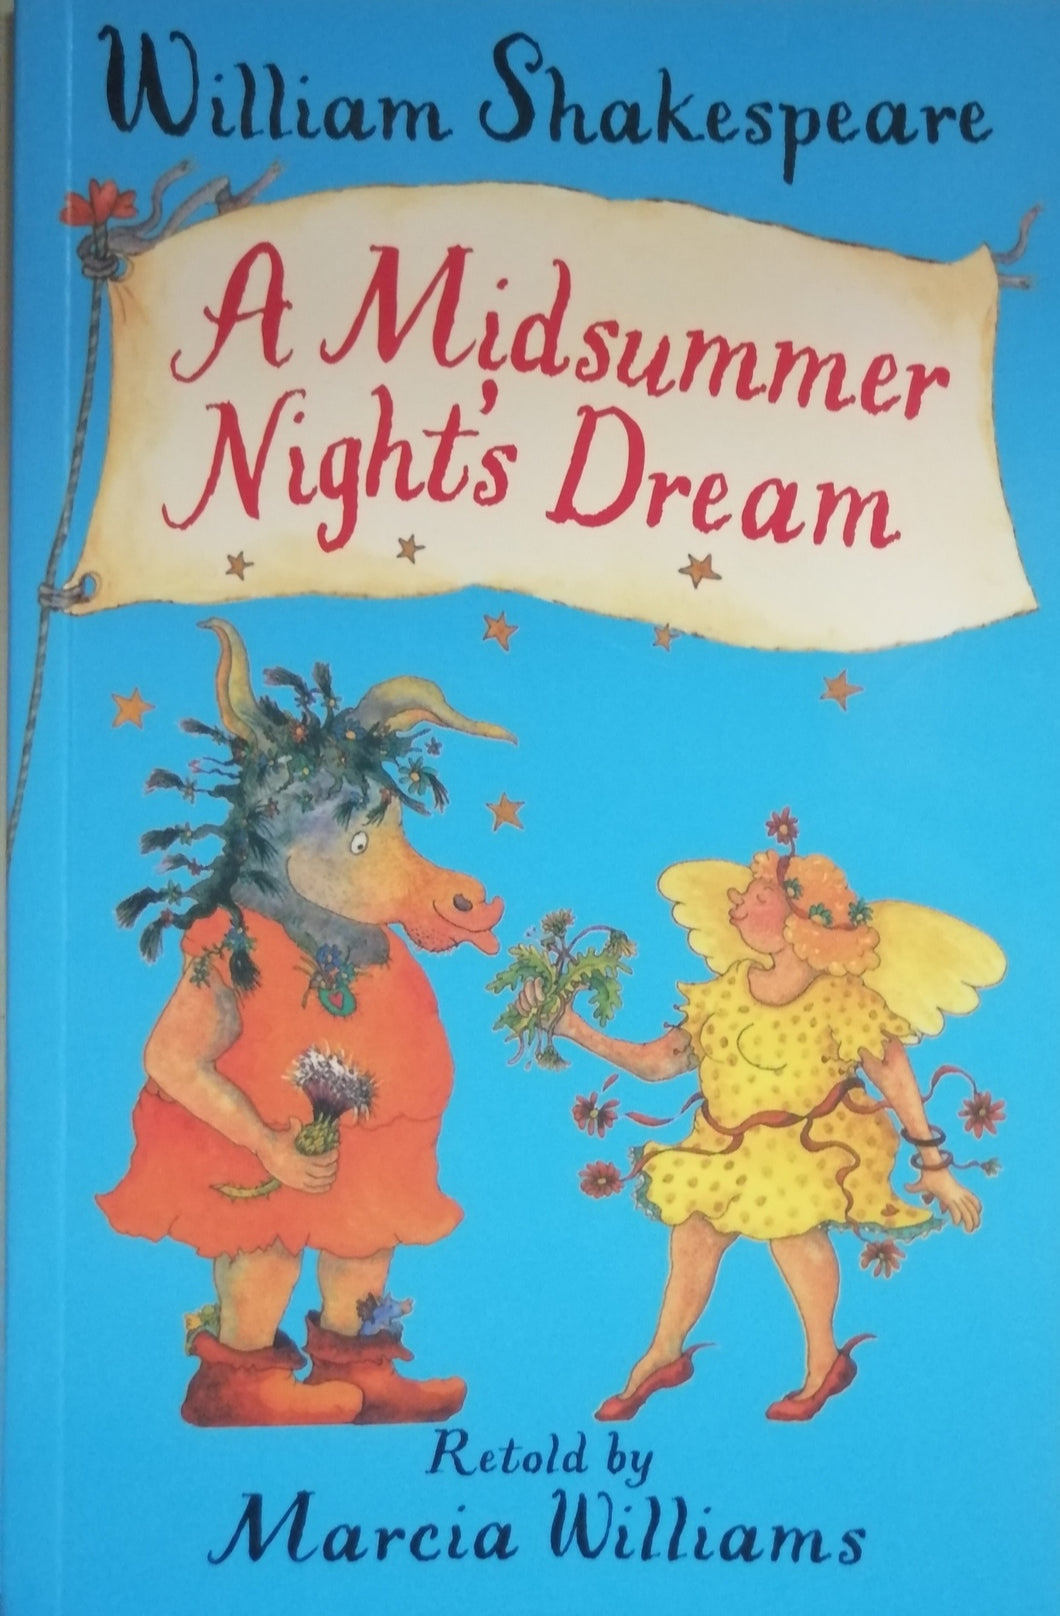 A midsummee nights dream by William Shakespeare